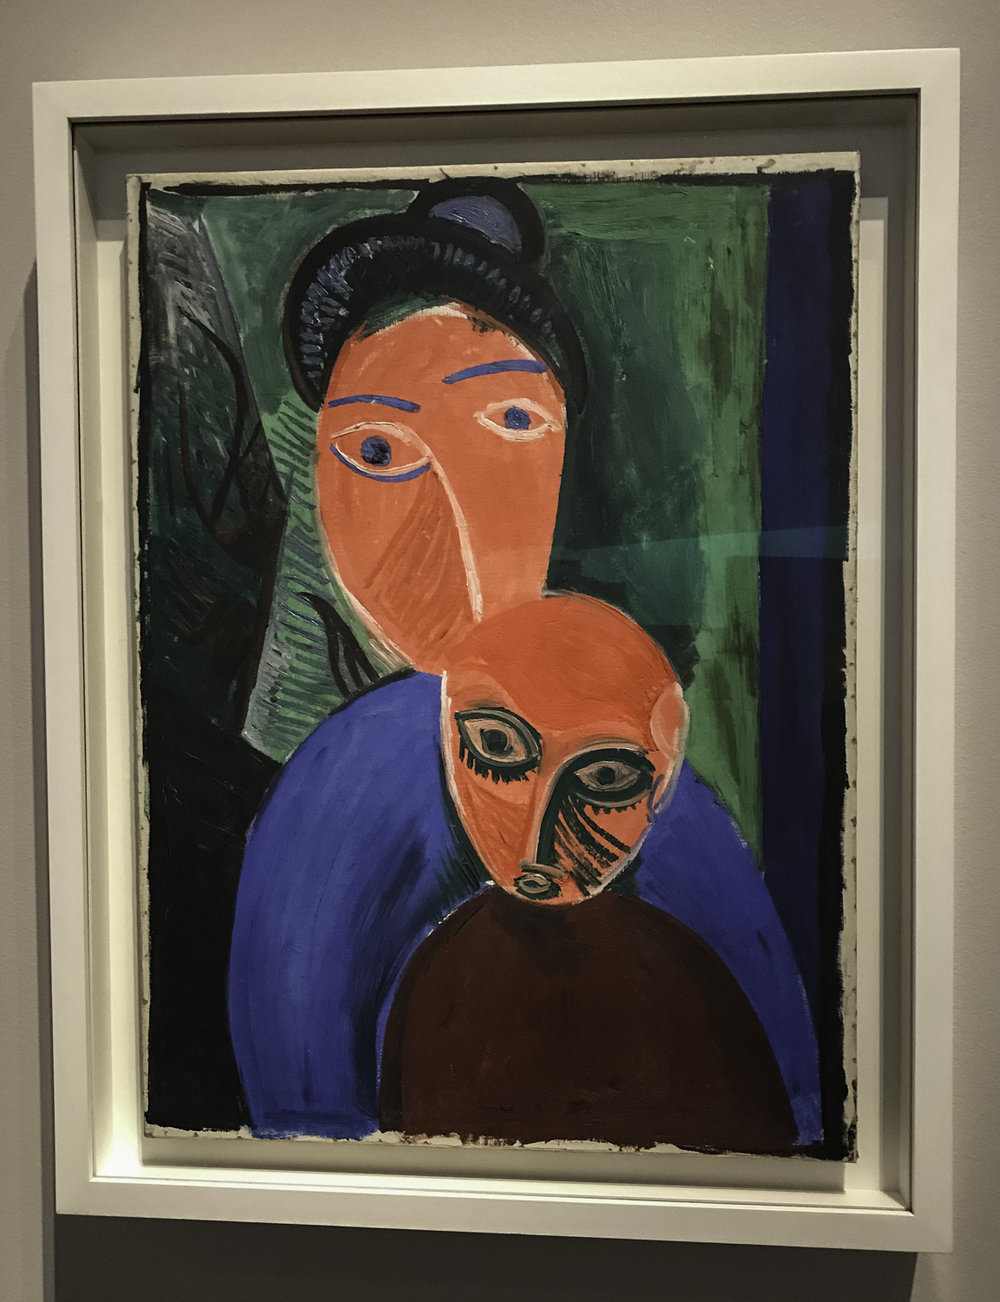 "Mother and Child,   oil on canvas, 1907.  ""Motherhood takes an unusual turn in this painting, which followed the completion of the completion of   Les Demoiselles d""Avignon  . Vivid contrasting colors, stylized faces and coarse brushstrokes seem to defy the warmth and gentleness more commonly used to depict this subject.  It is another signal of Picasso's decisive turn toward a strong and often startling visual language."""